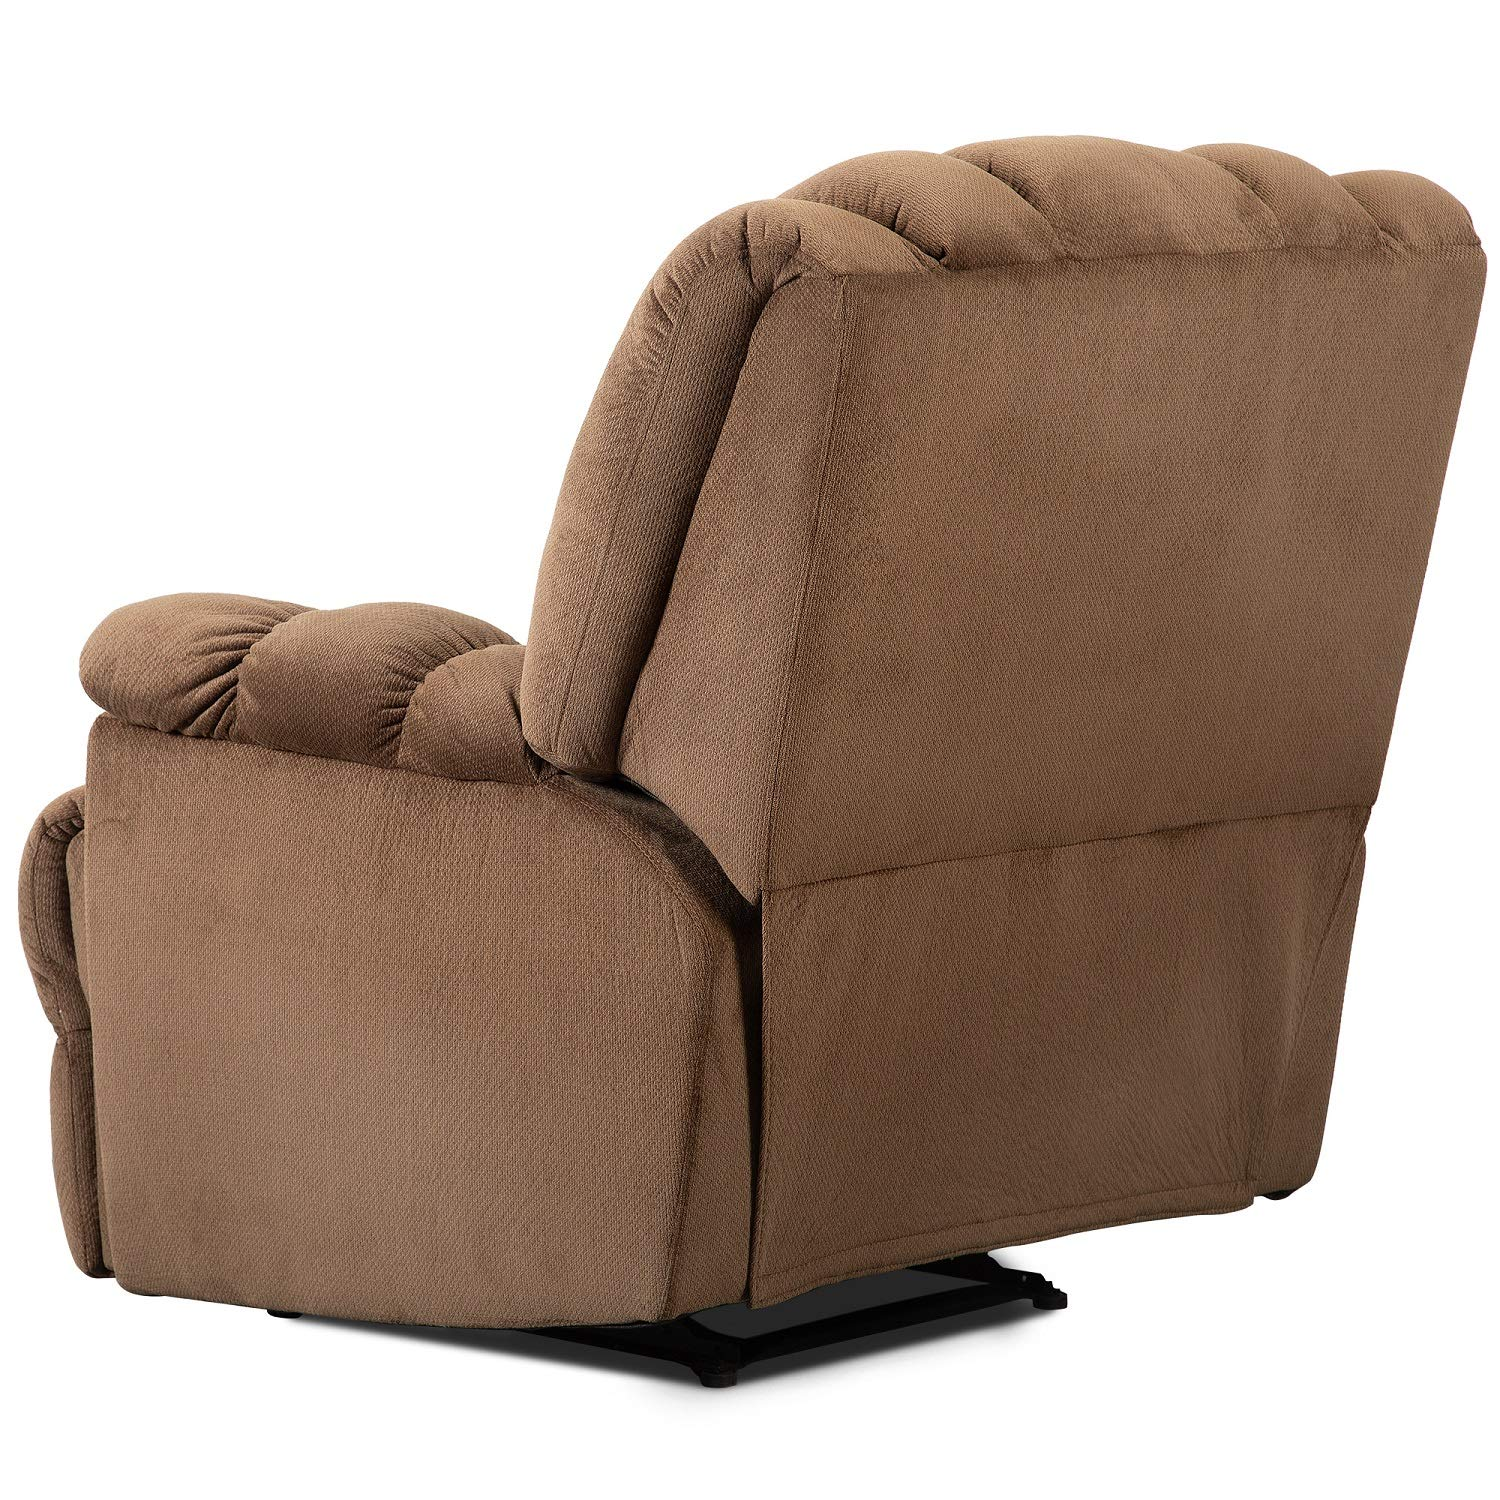 Strange Thick Padded Recliner Chair Fabric Living Room Chair Single Seat Lounge Sofa Reclining Natural Sand Cjindustries Chair Design For Home Cjindustriesco